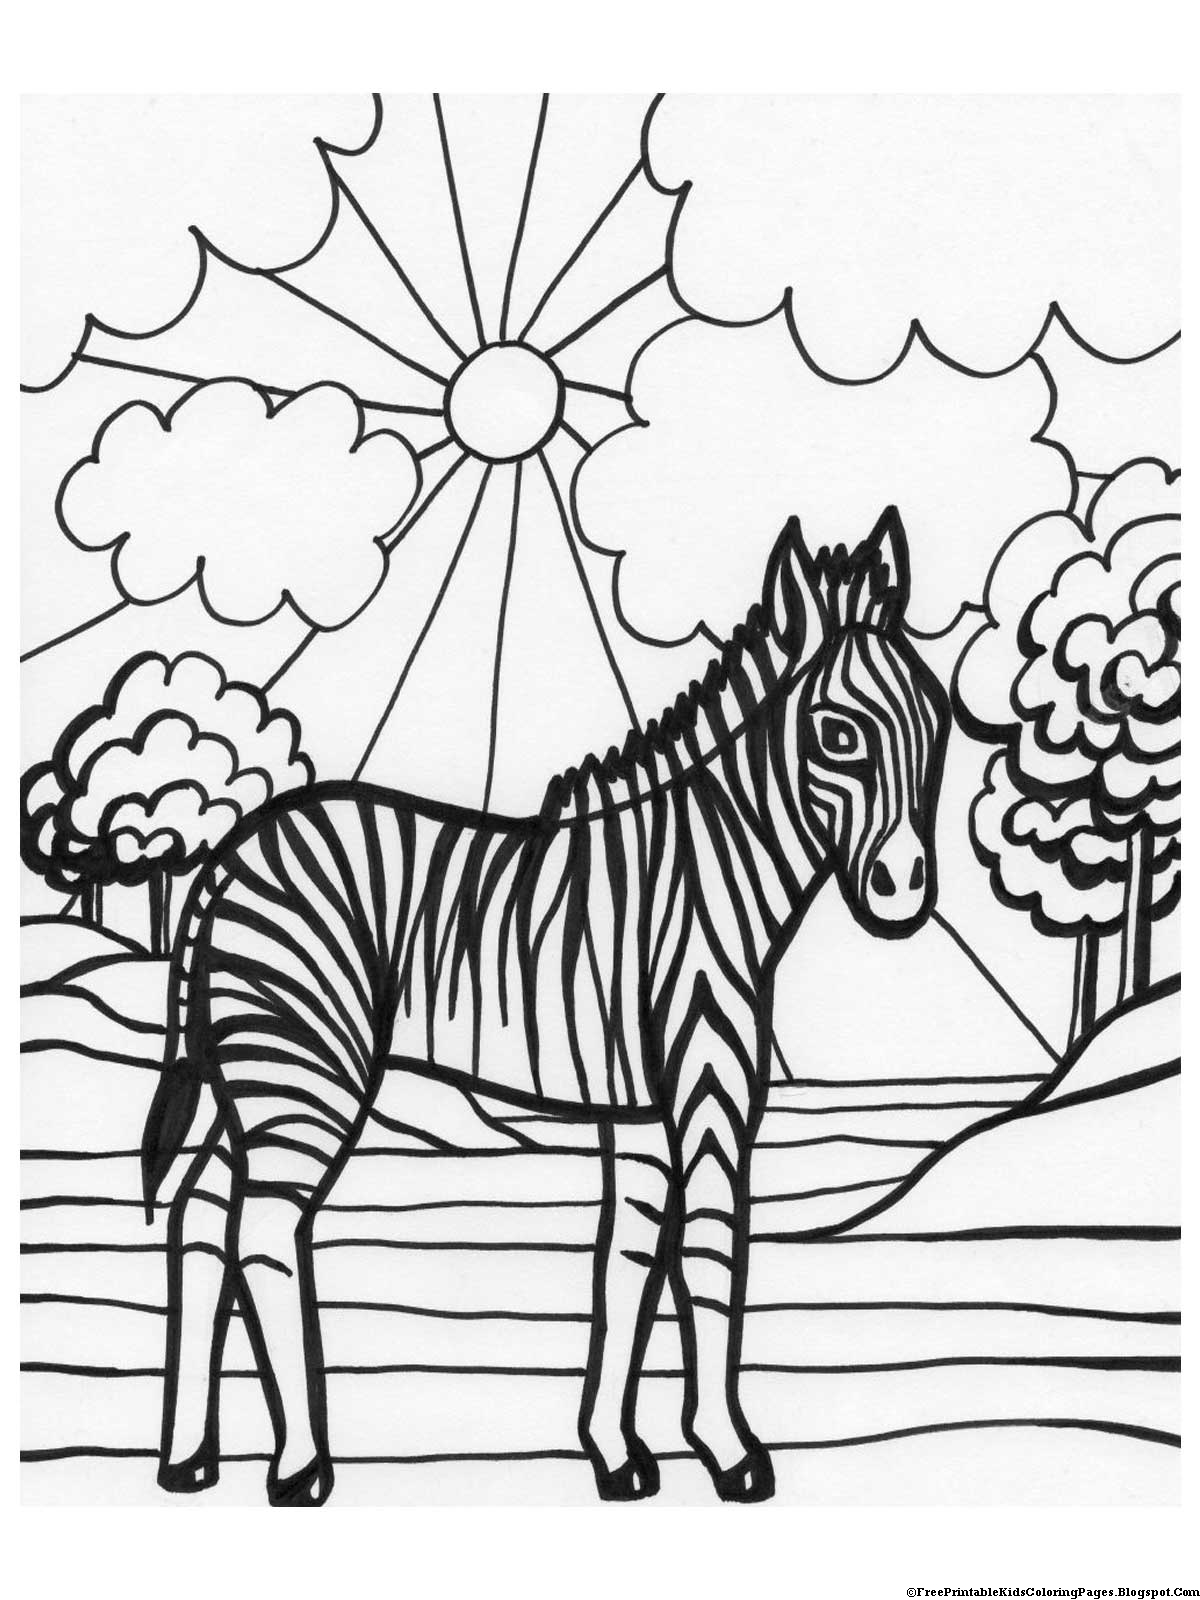 zebra coloring pages free printable zebra coloring pages free printable kids coloring pages coloring zebra pages free printable